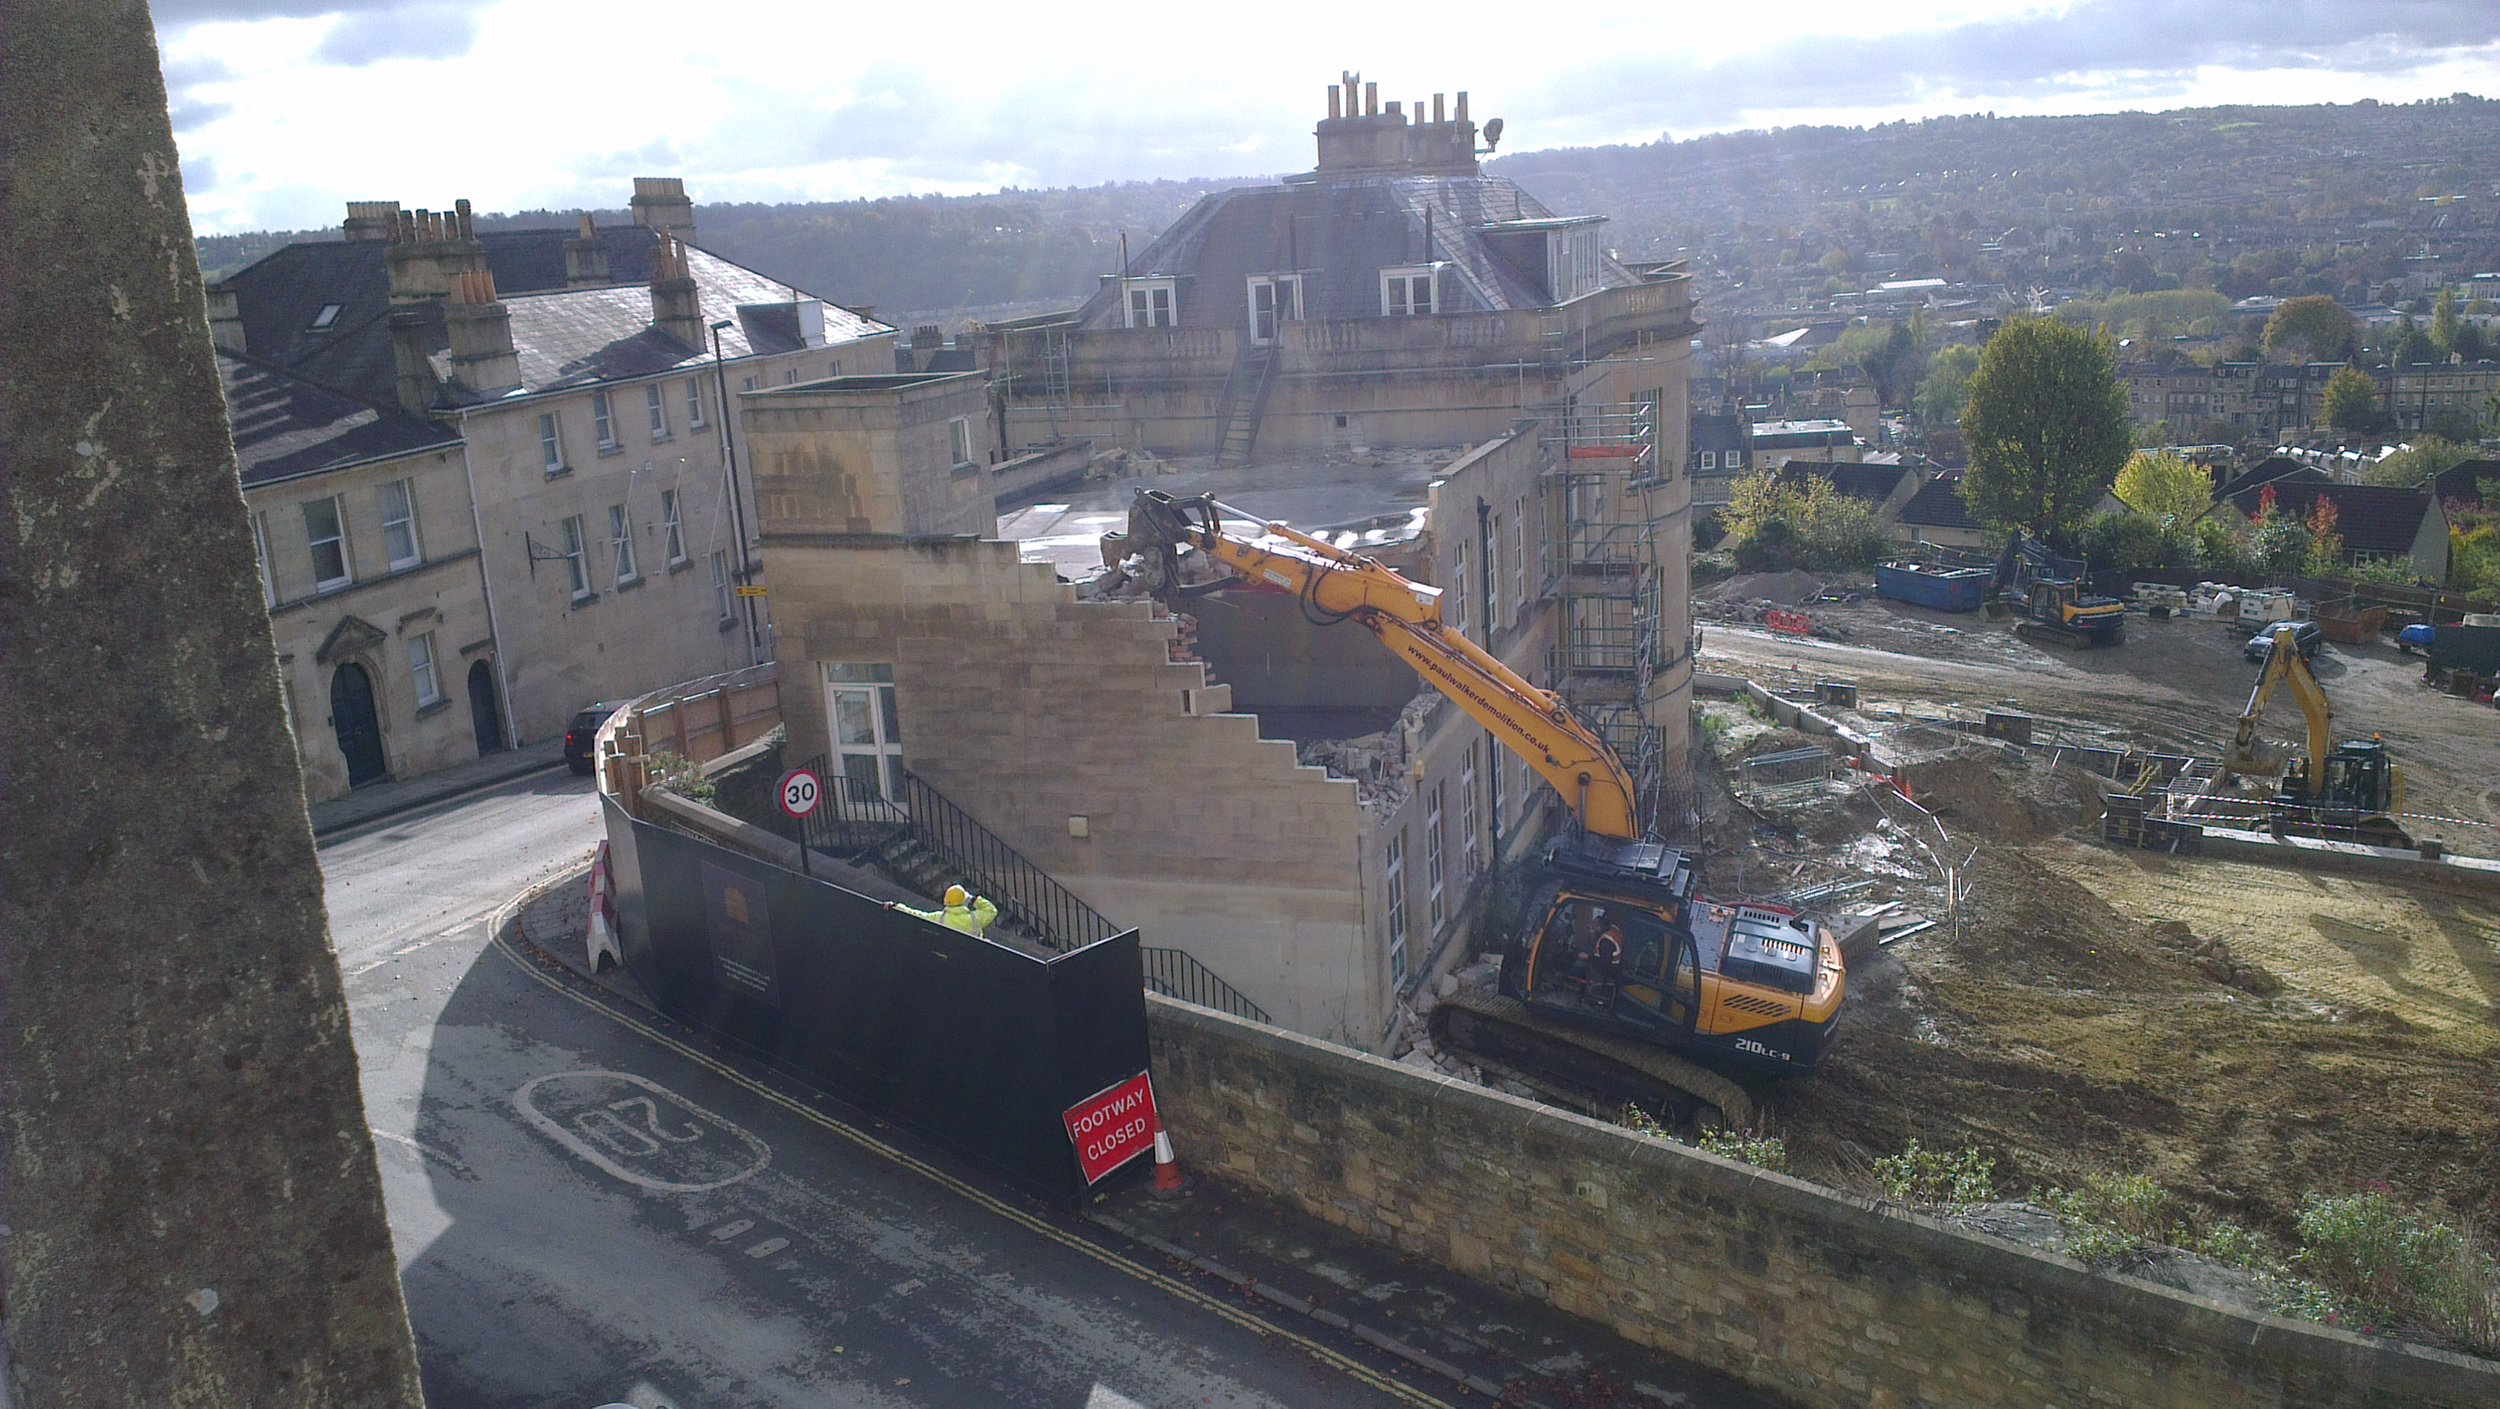 Demolition of the Hope House extension